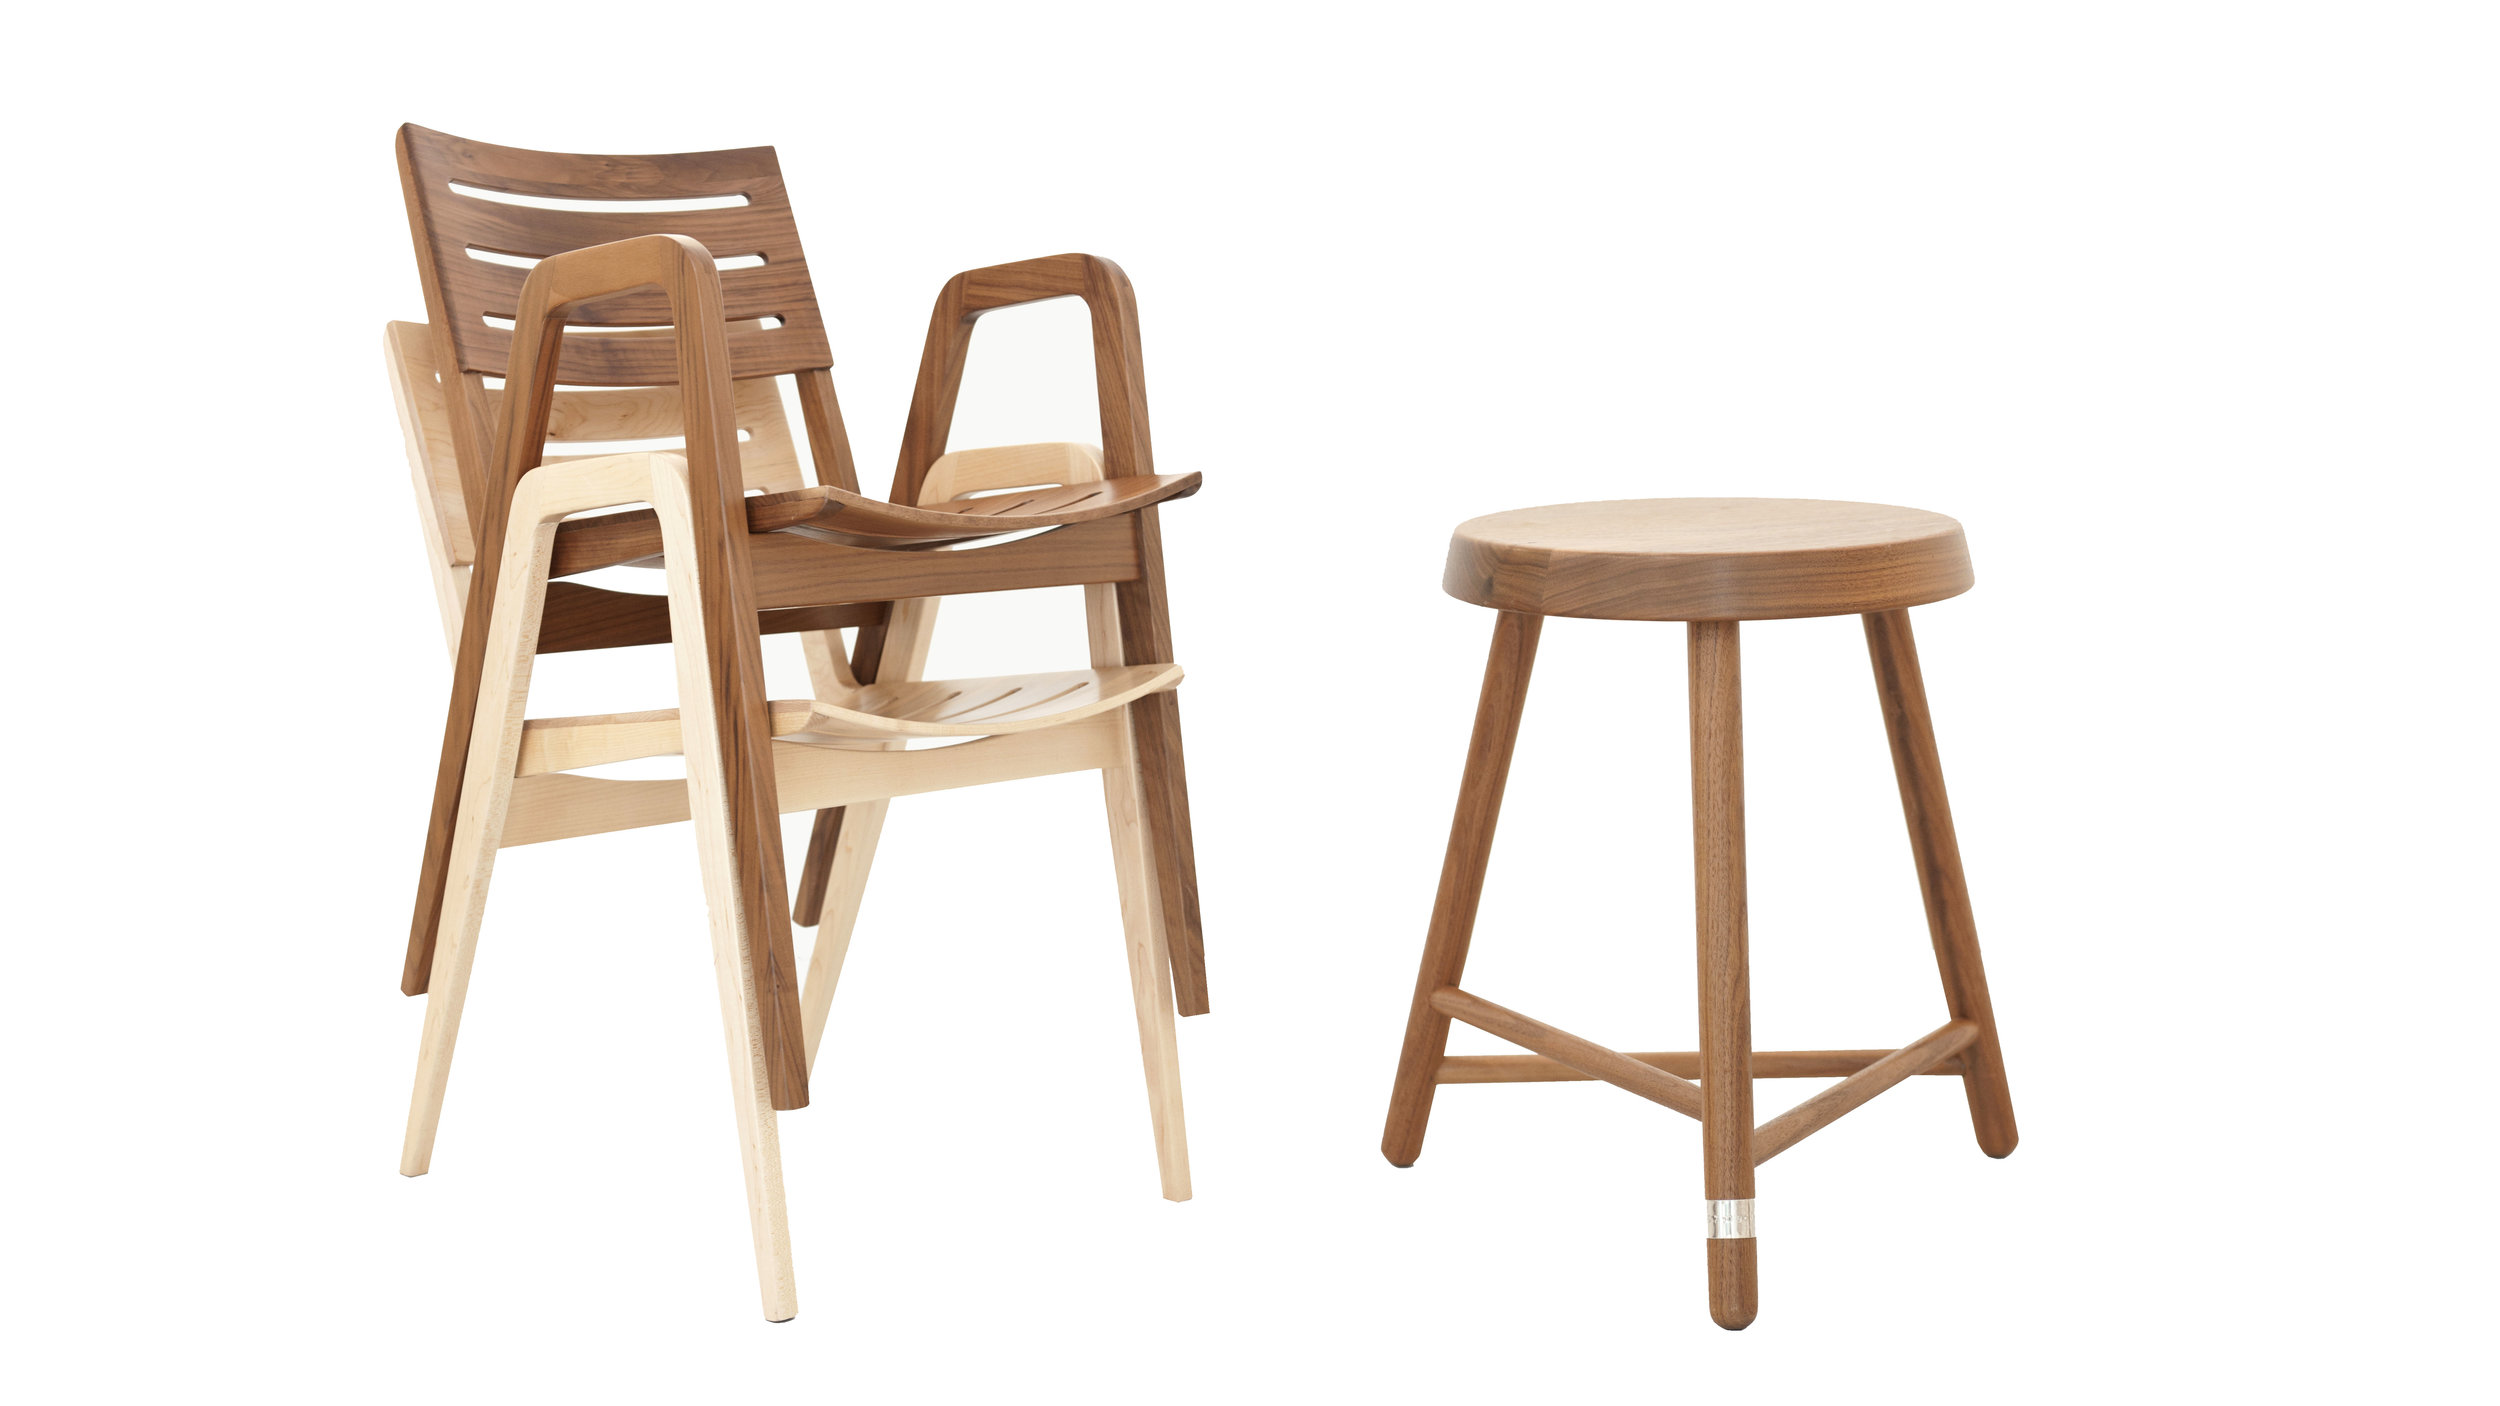 PlantandMoss_Bistro_Chairs Stacked_and_Companion_Stool-white.jpg